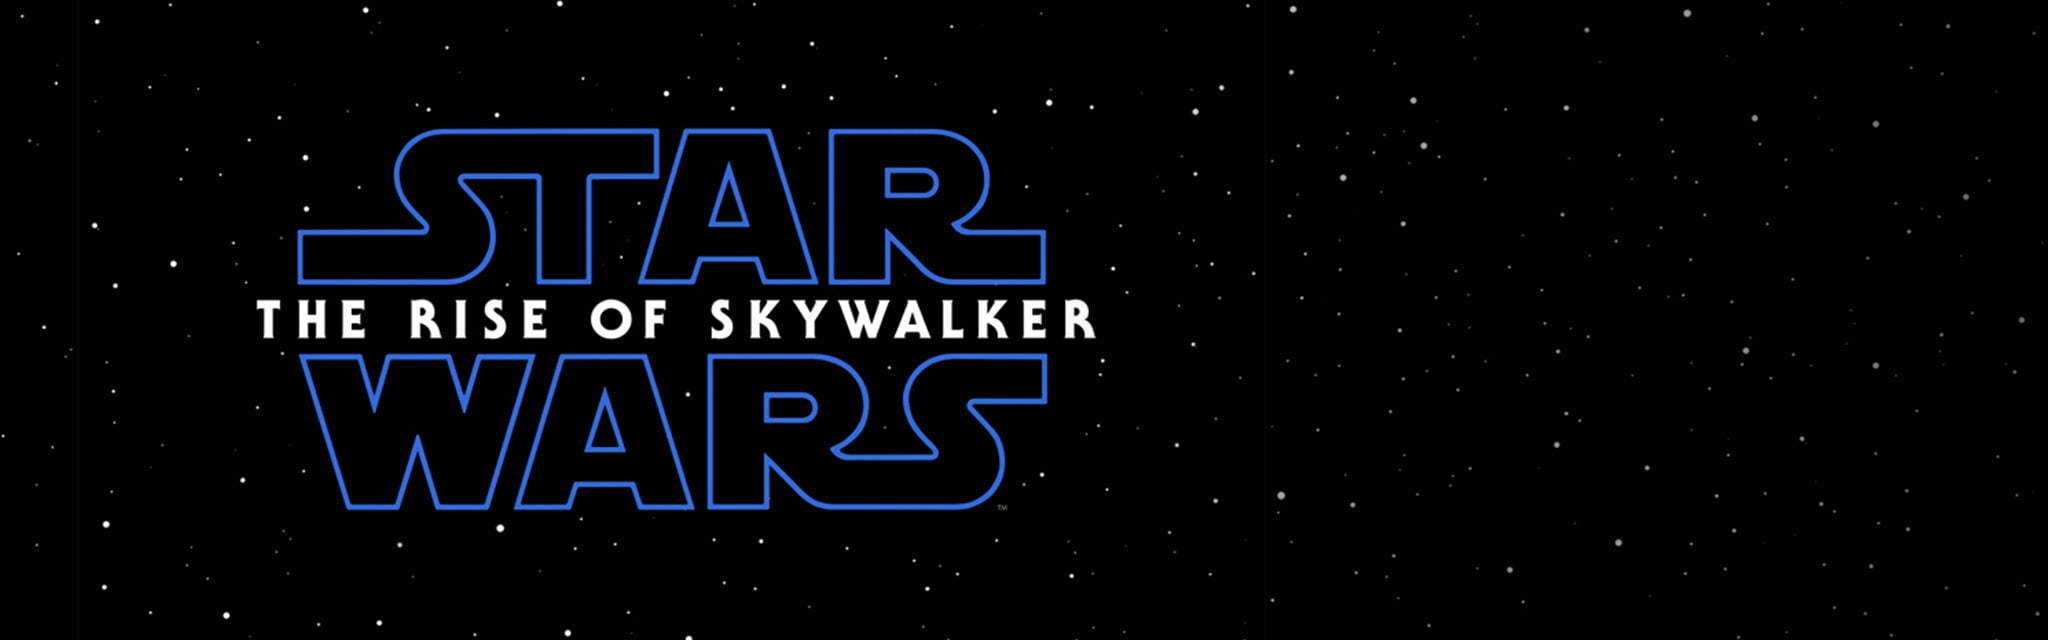 1515308bc6ac Star Wars  Episode IX  The Rise of Skywalker